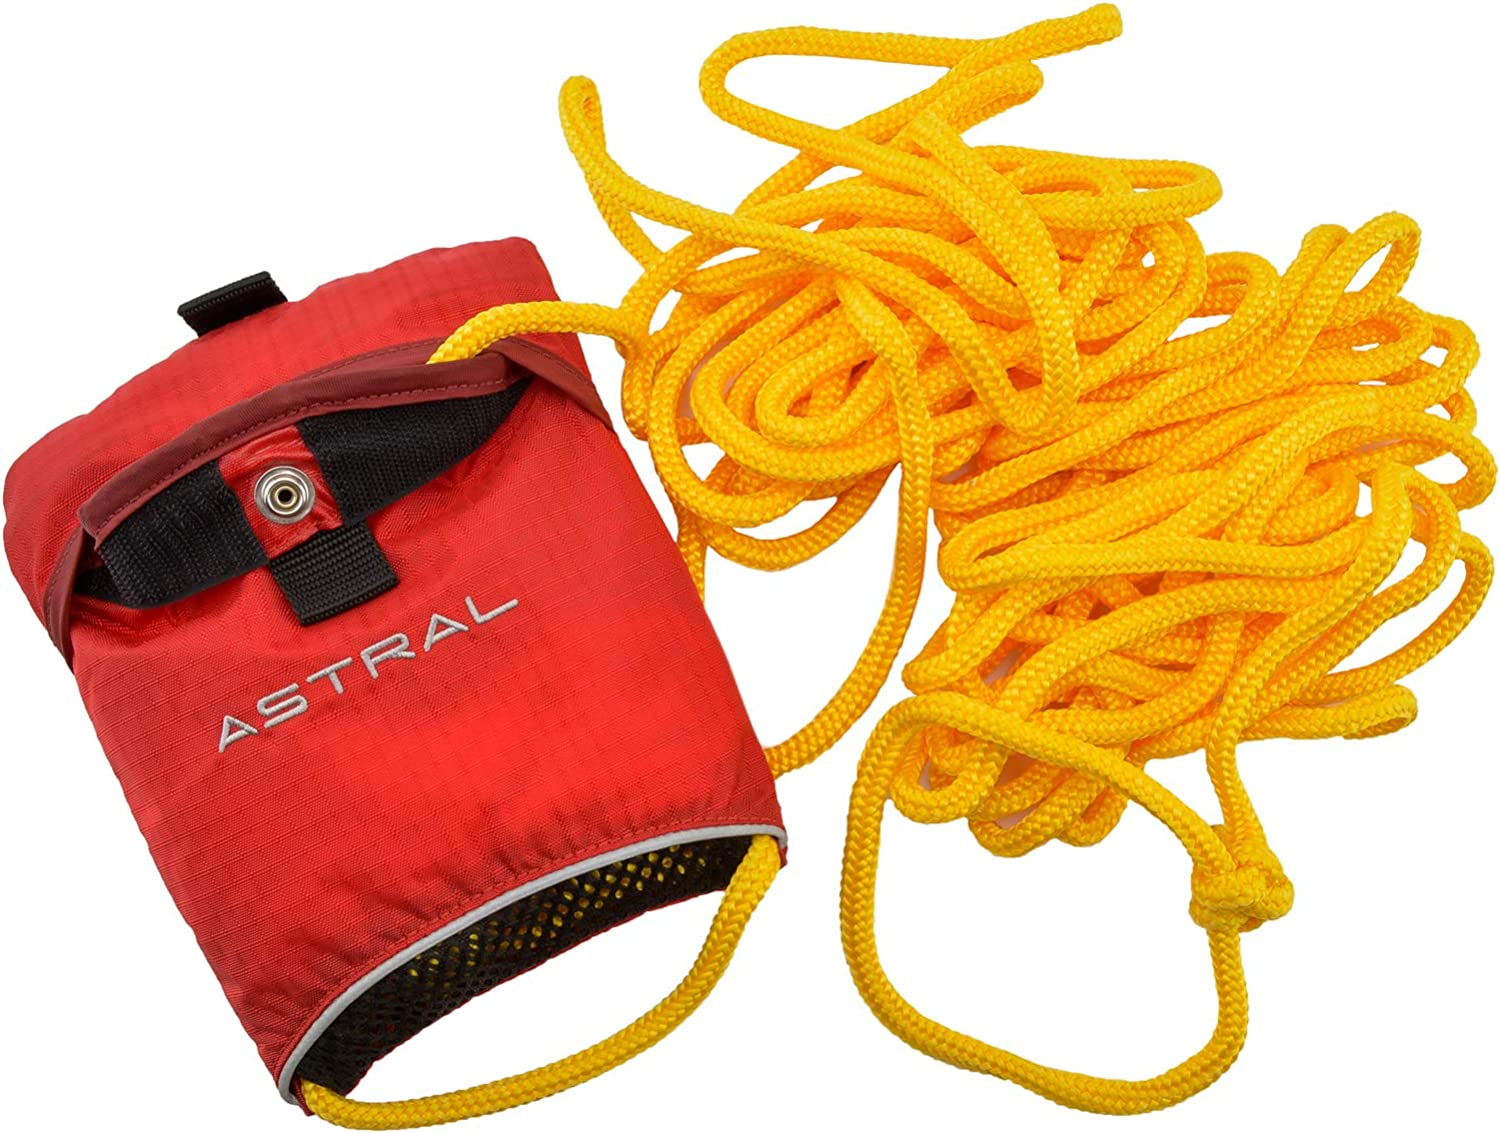 Kwik Tek Life Line Rescue Throw Bag  50 FT LL-1